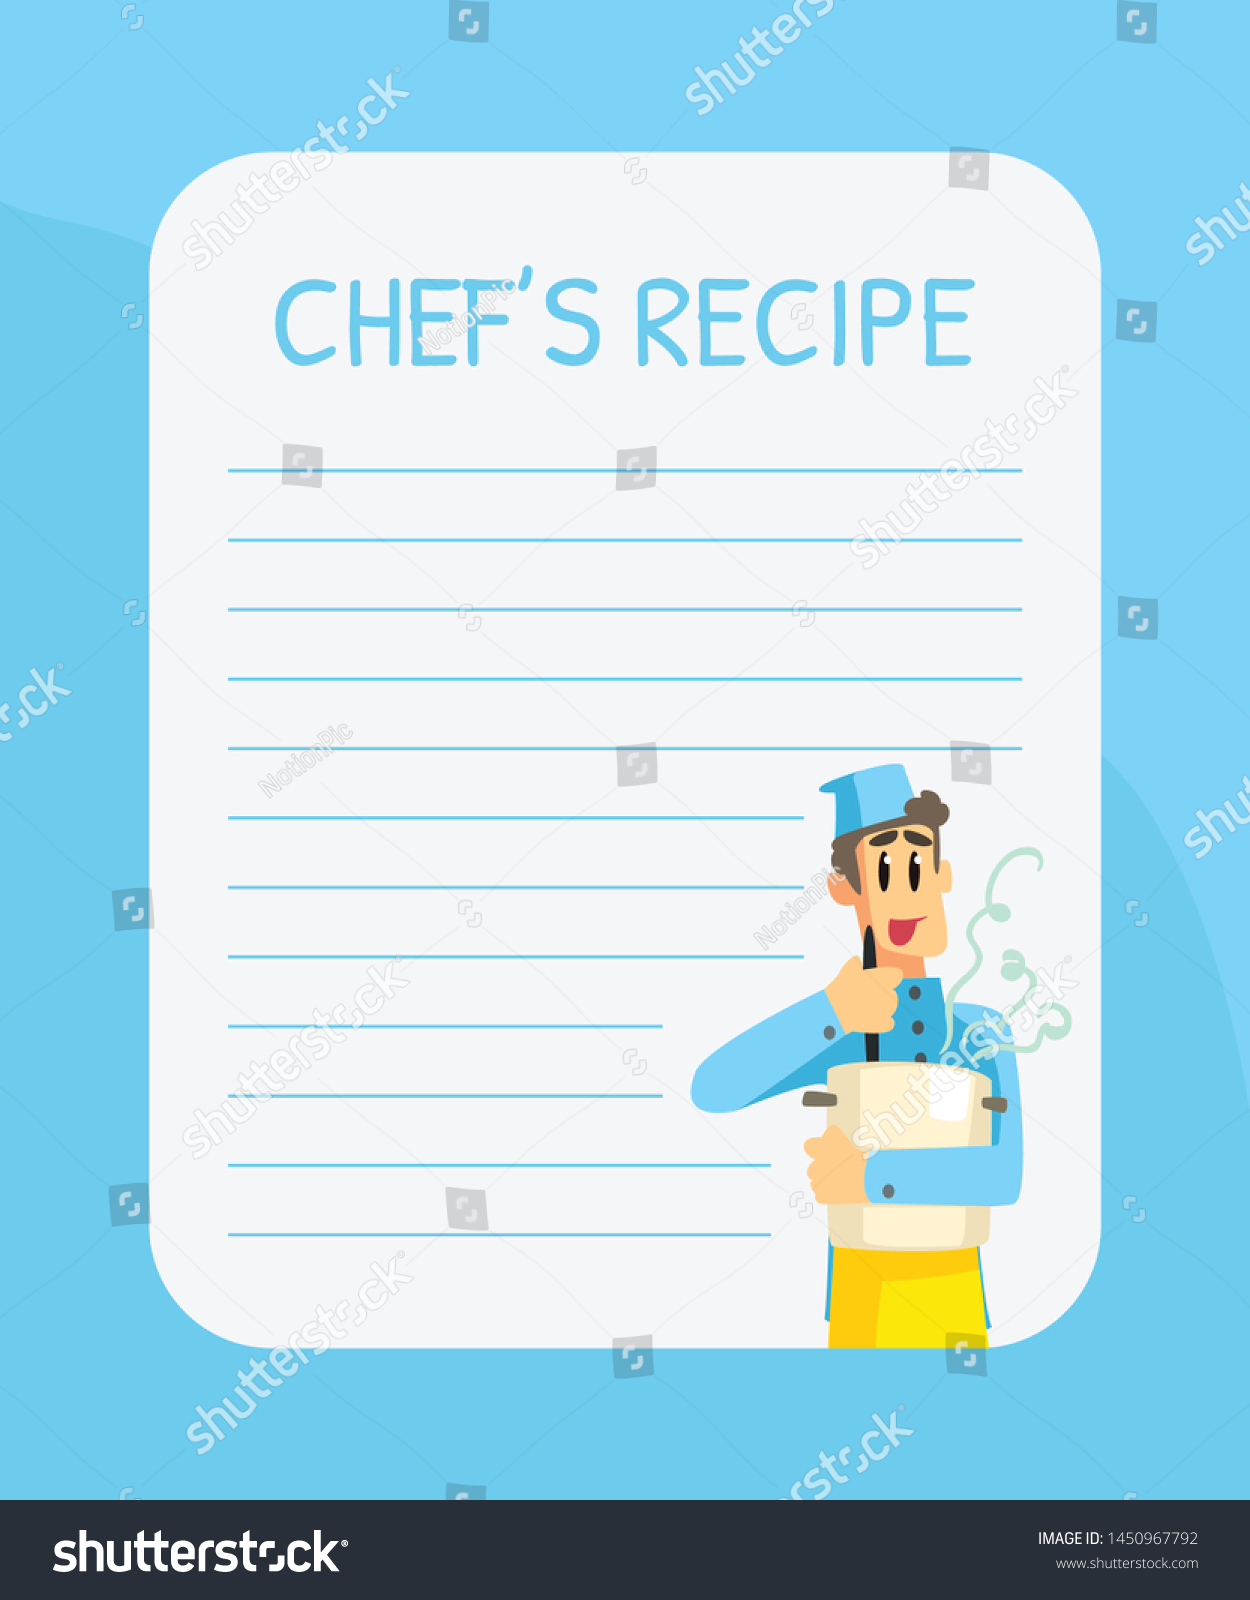 Blank Recipe Card Template from image.shutterstock.com